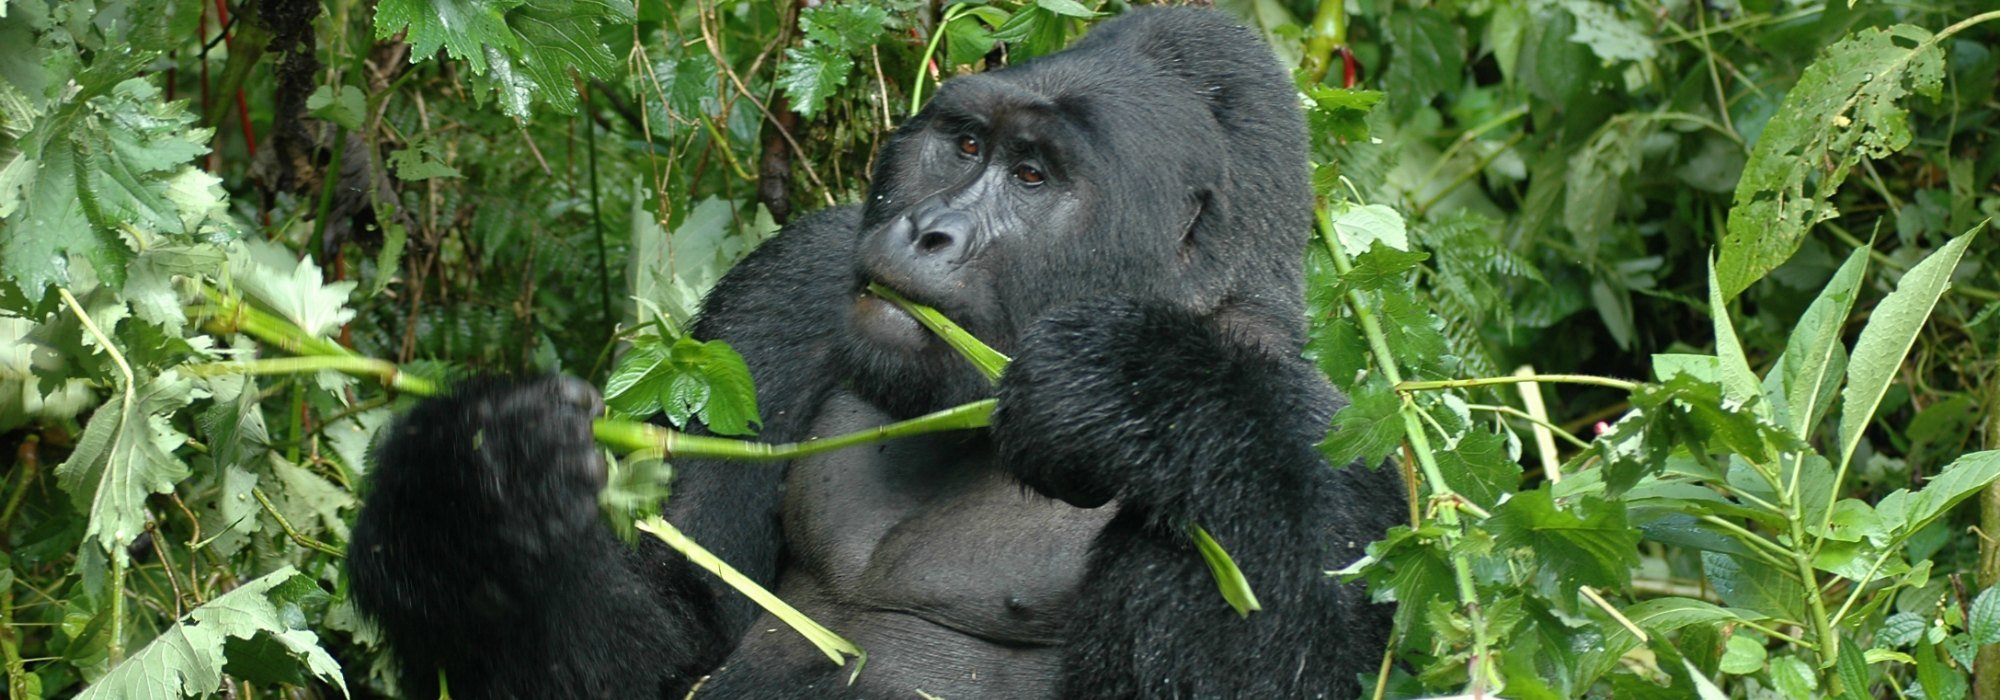 Gorilla in Uganda's Bwindi National Park